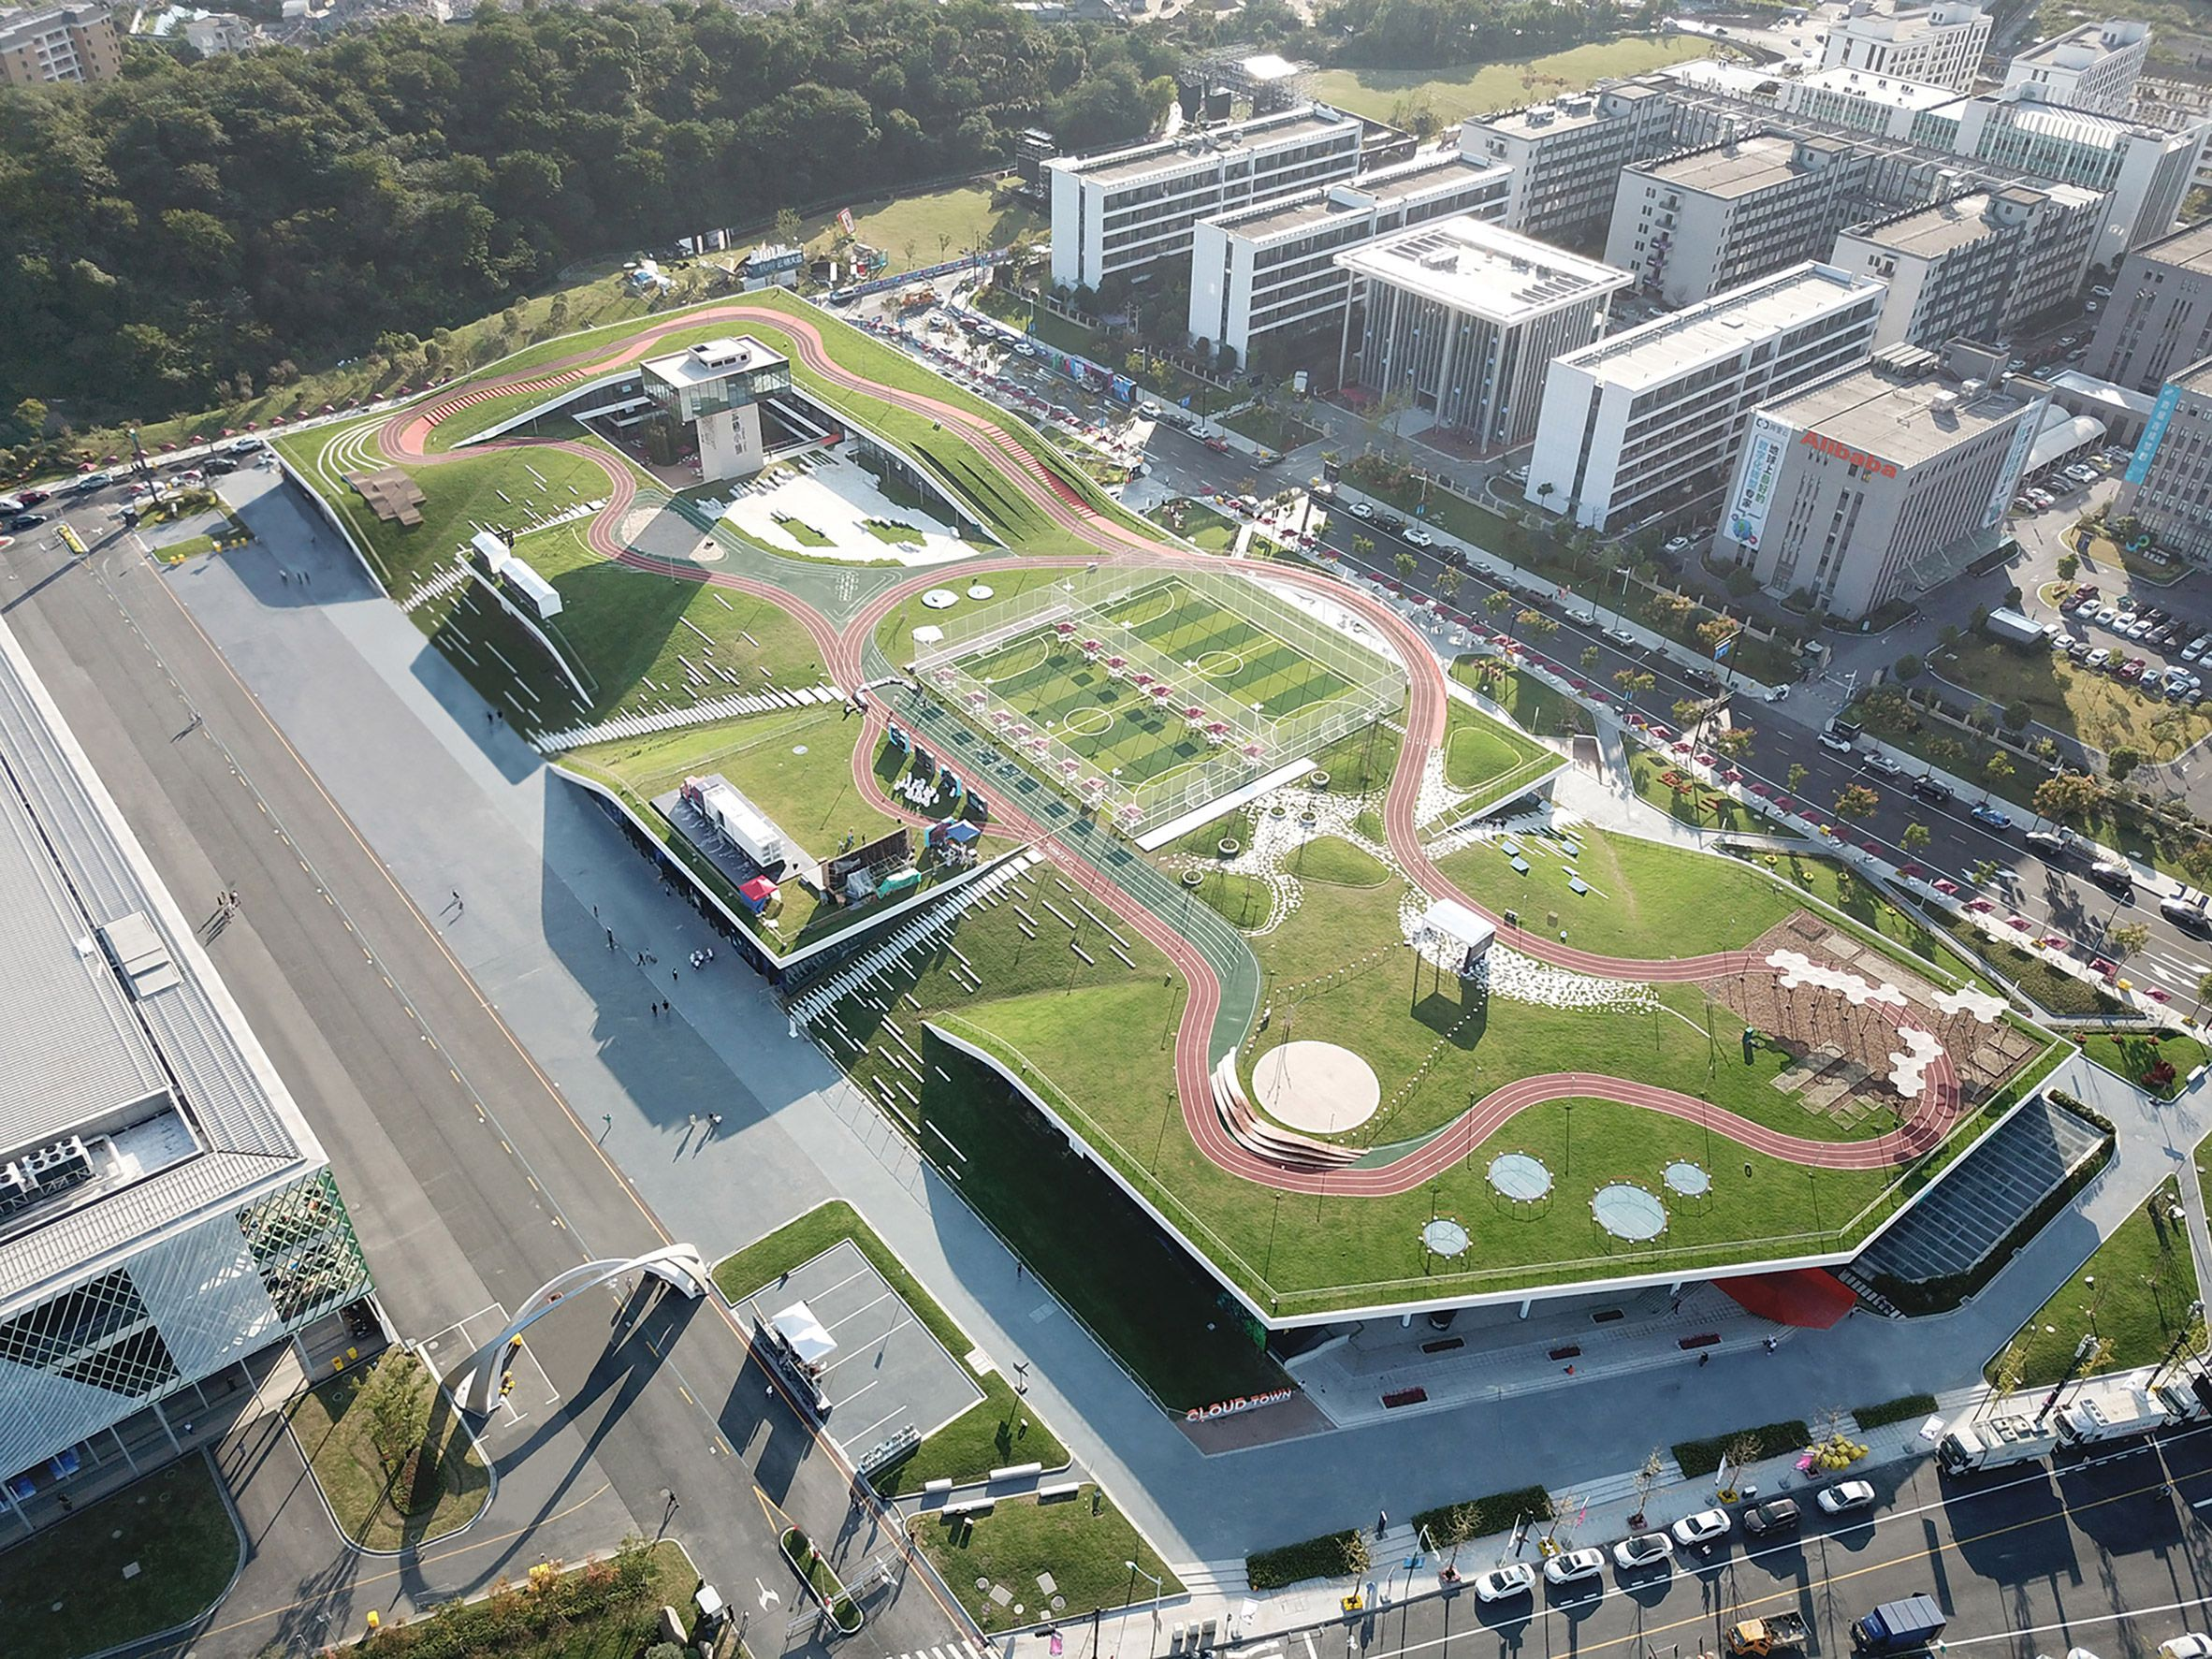 Hangzhou Cloud Town Exhibition Center By Approach Design Has A Green Roof With A Running Track City Parks Design Parking Design Park Landscape